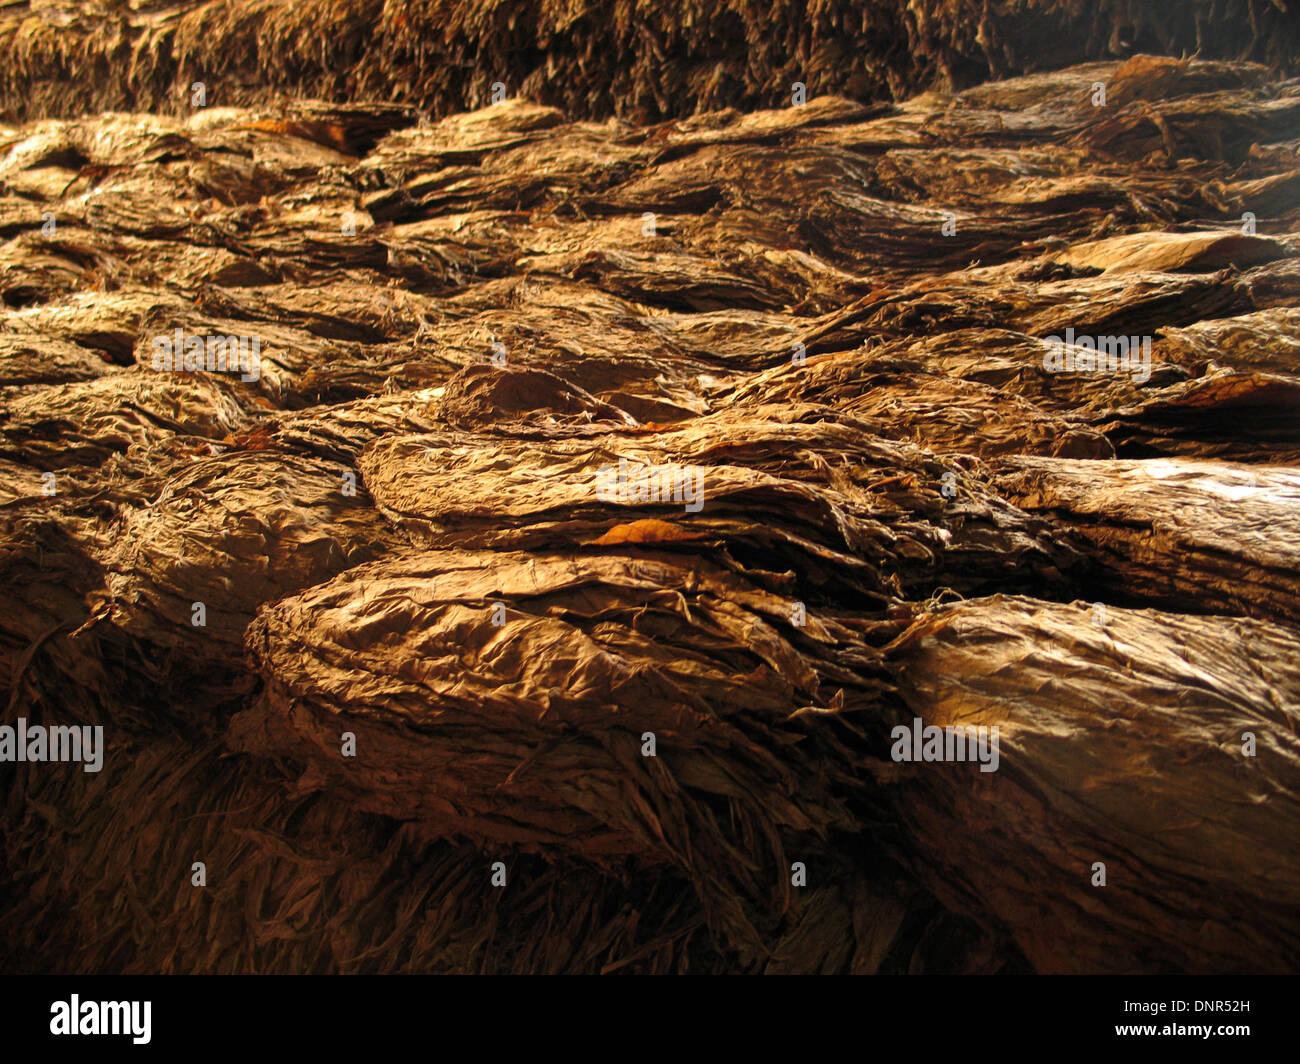 Drying cigar leaves - Cuba - Stock Image